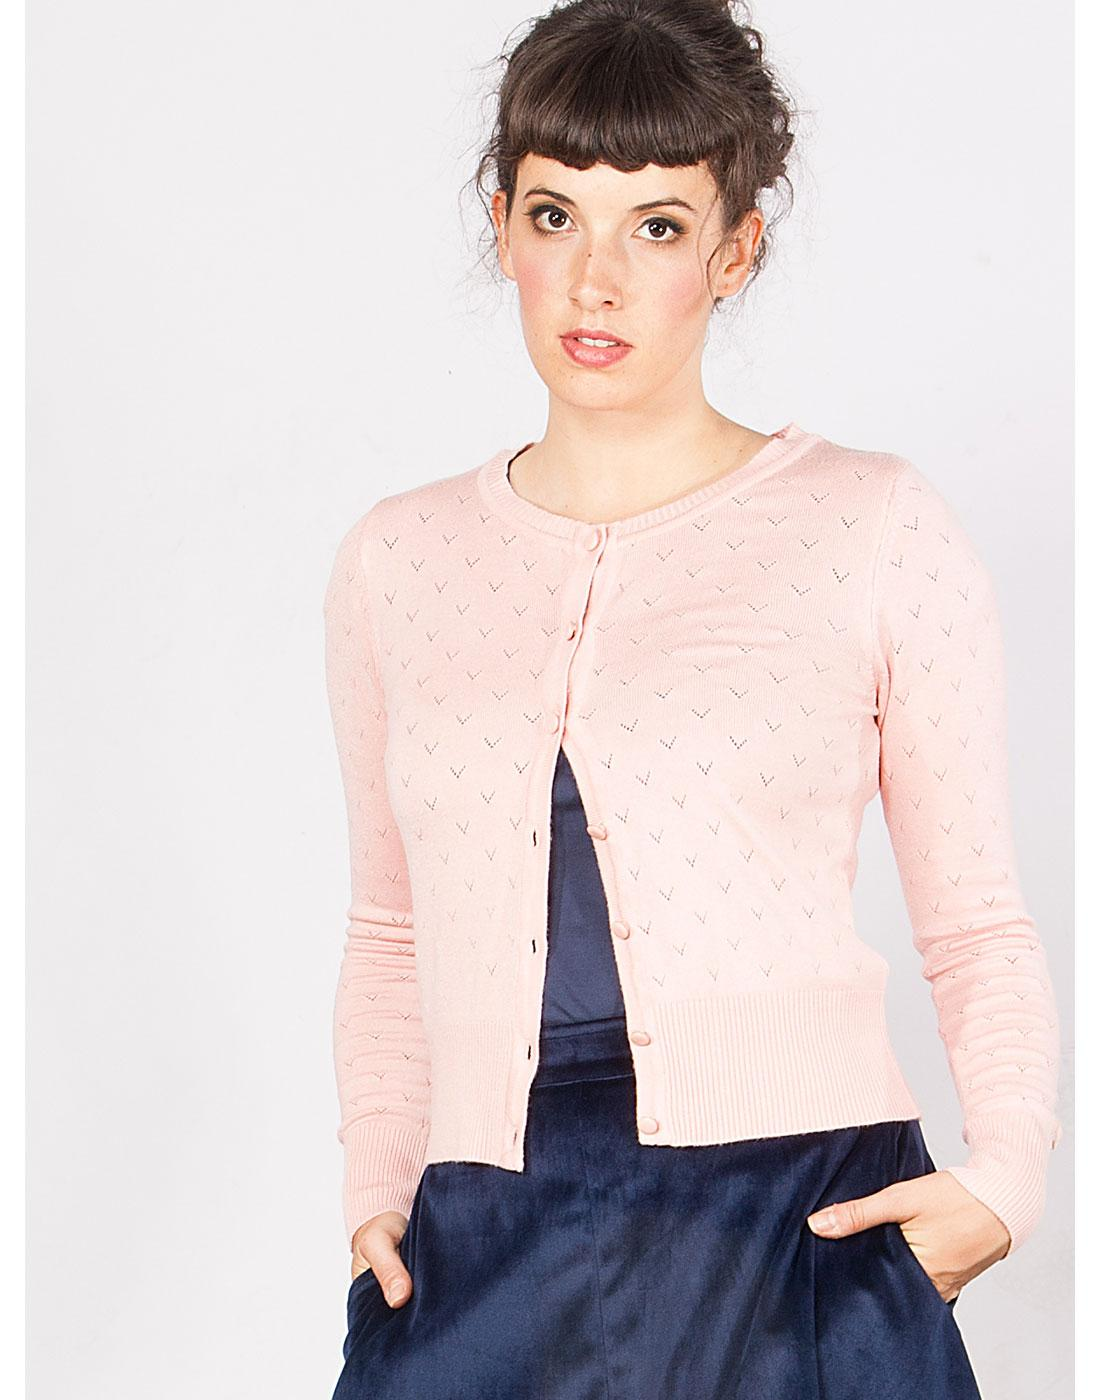 Lovelyn MADEMOISELLE YEYE Retro Cardigan in Blush